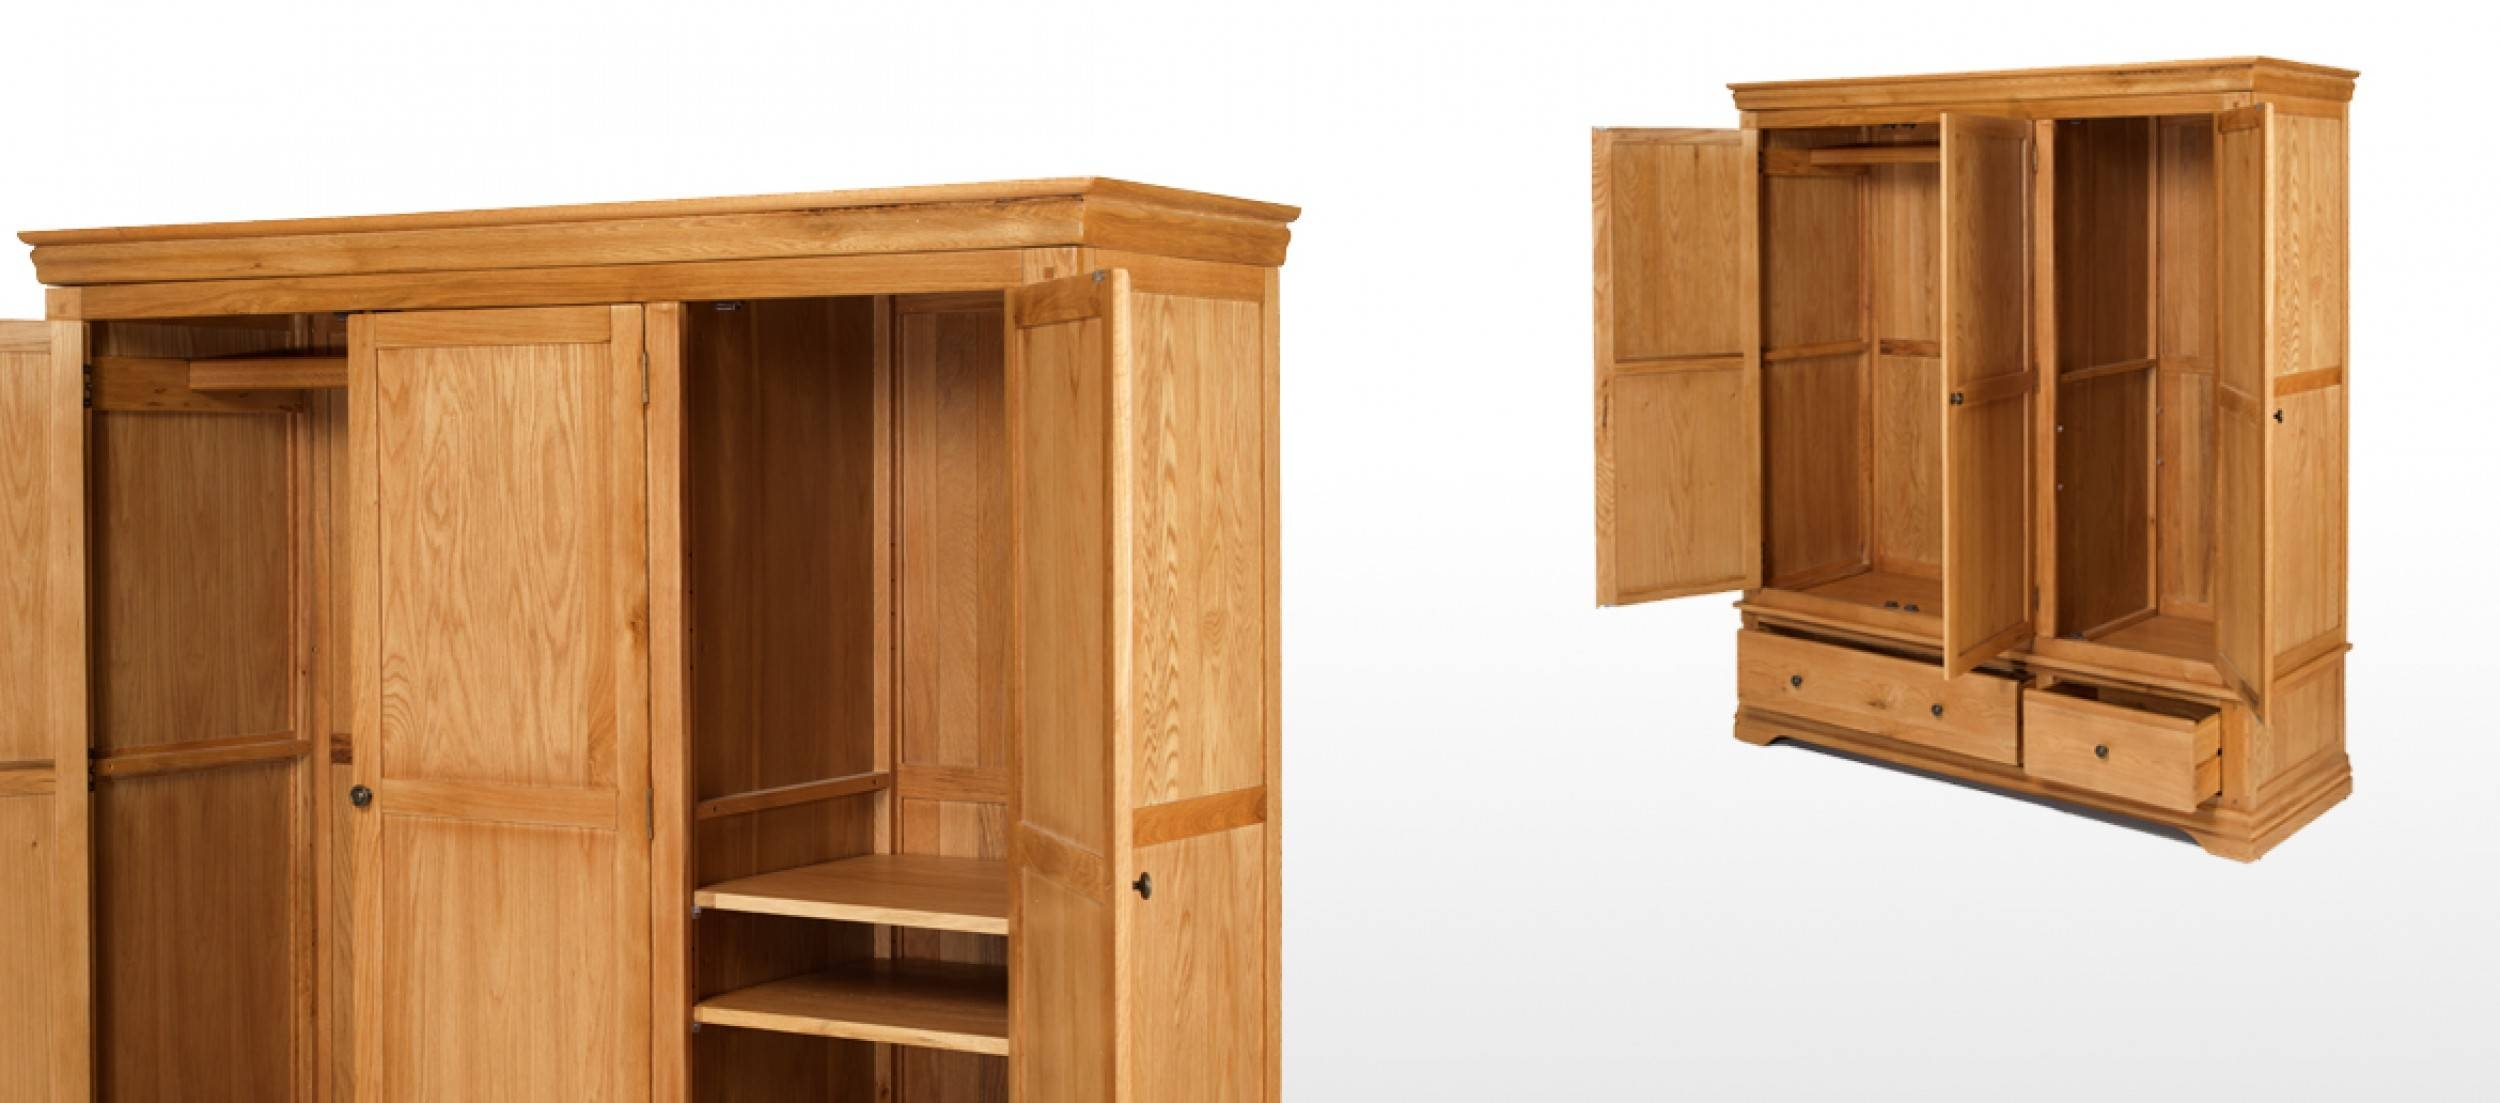 Constance Oak Triple Wardrobe With Drawers | Quercus Living With Oak Wardrobe With Drawers And Shelves (View 21 of 30)